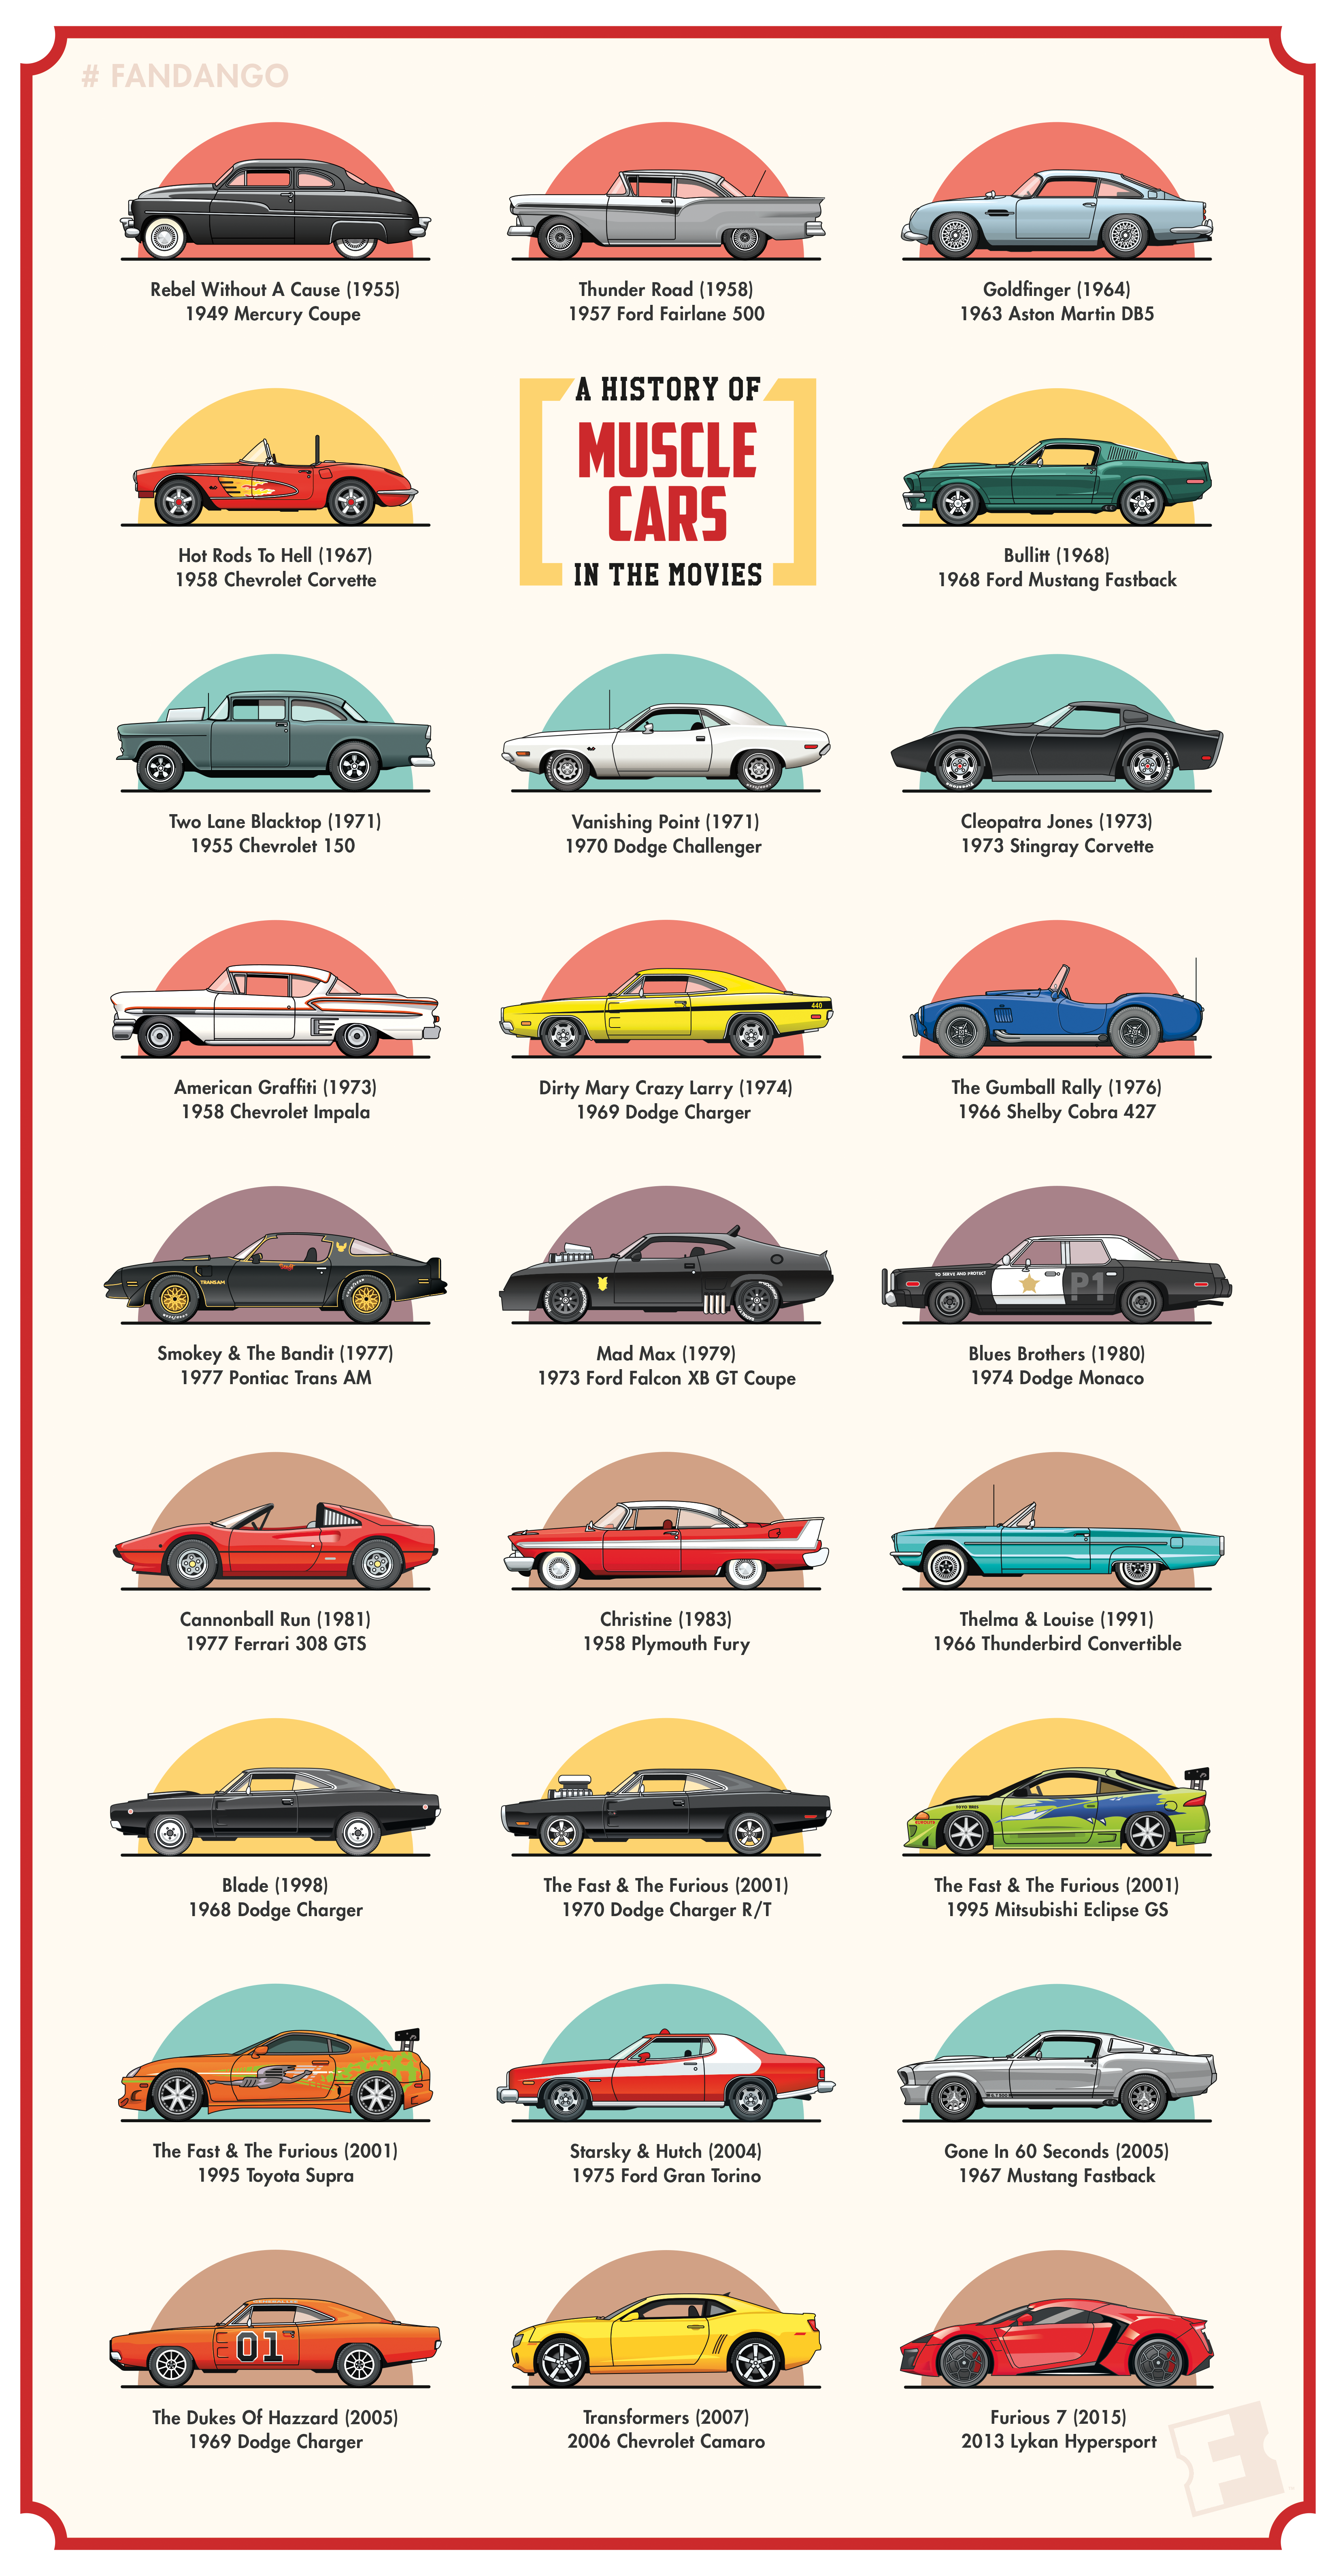 medium resolution of put the pedal to the metal and see if you can find your favorite movie muscle car in this revved up poster